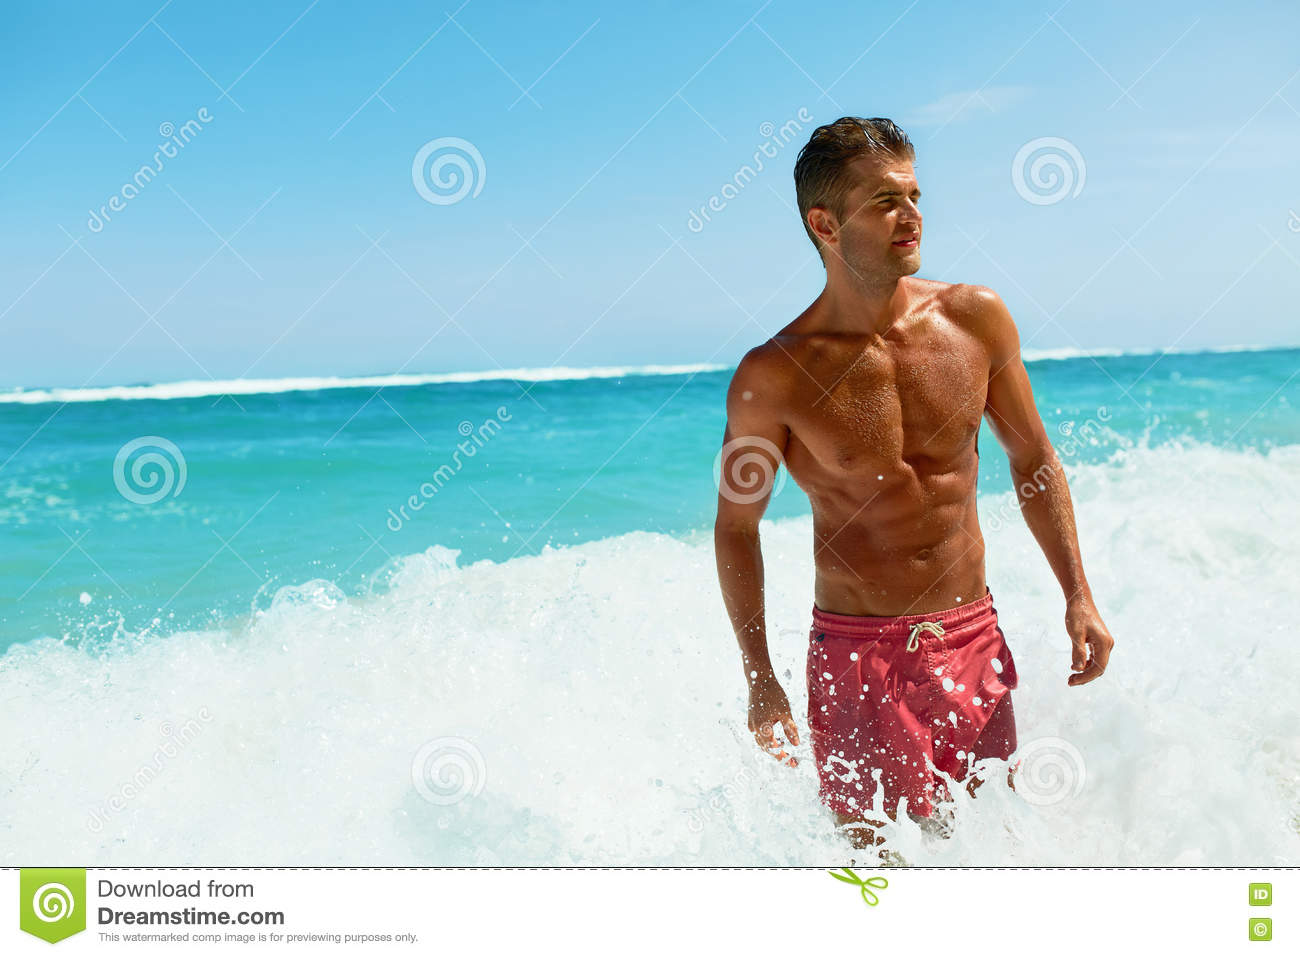 Attractive Man On Beach In Summer. Male Relaxing Near Sea. Healthy, Coming.